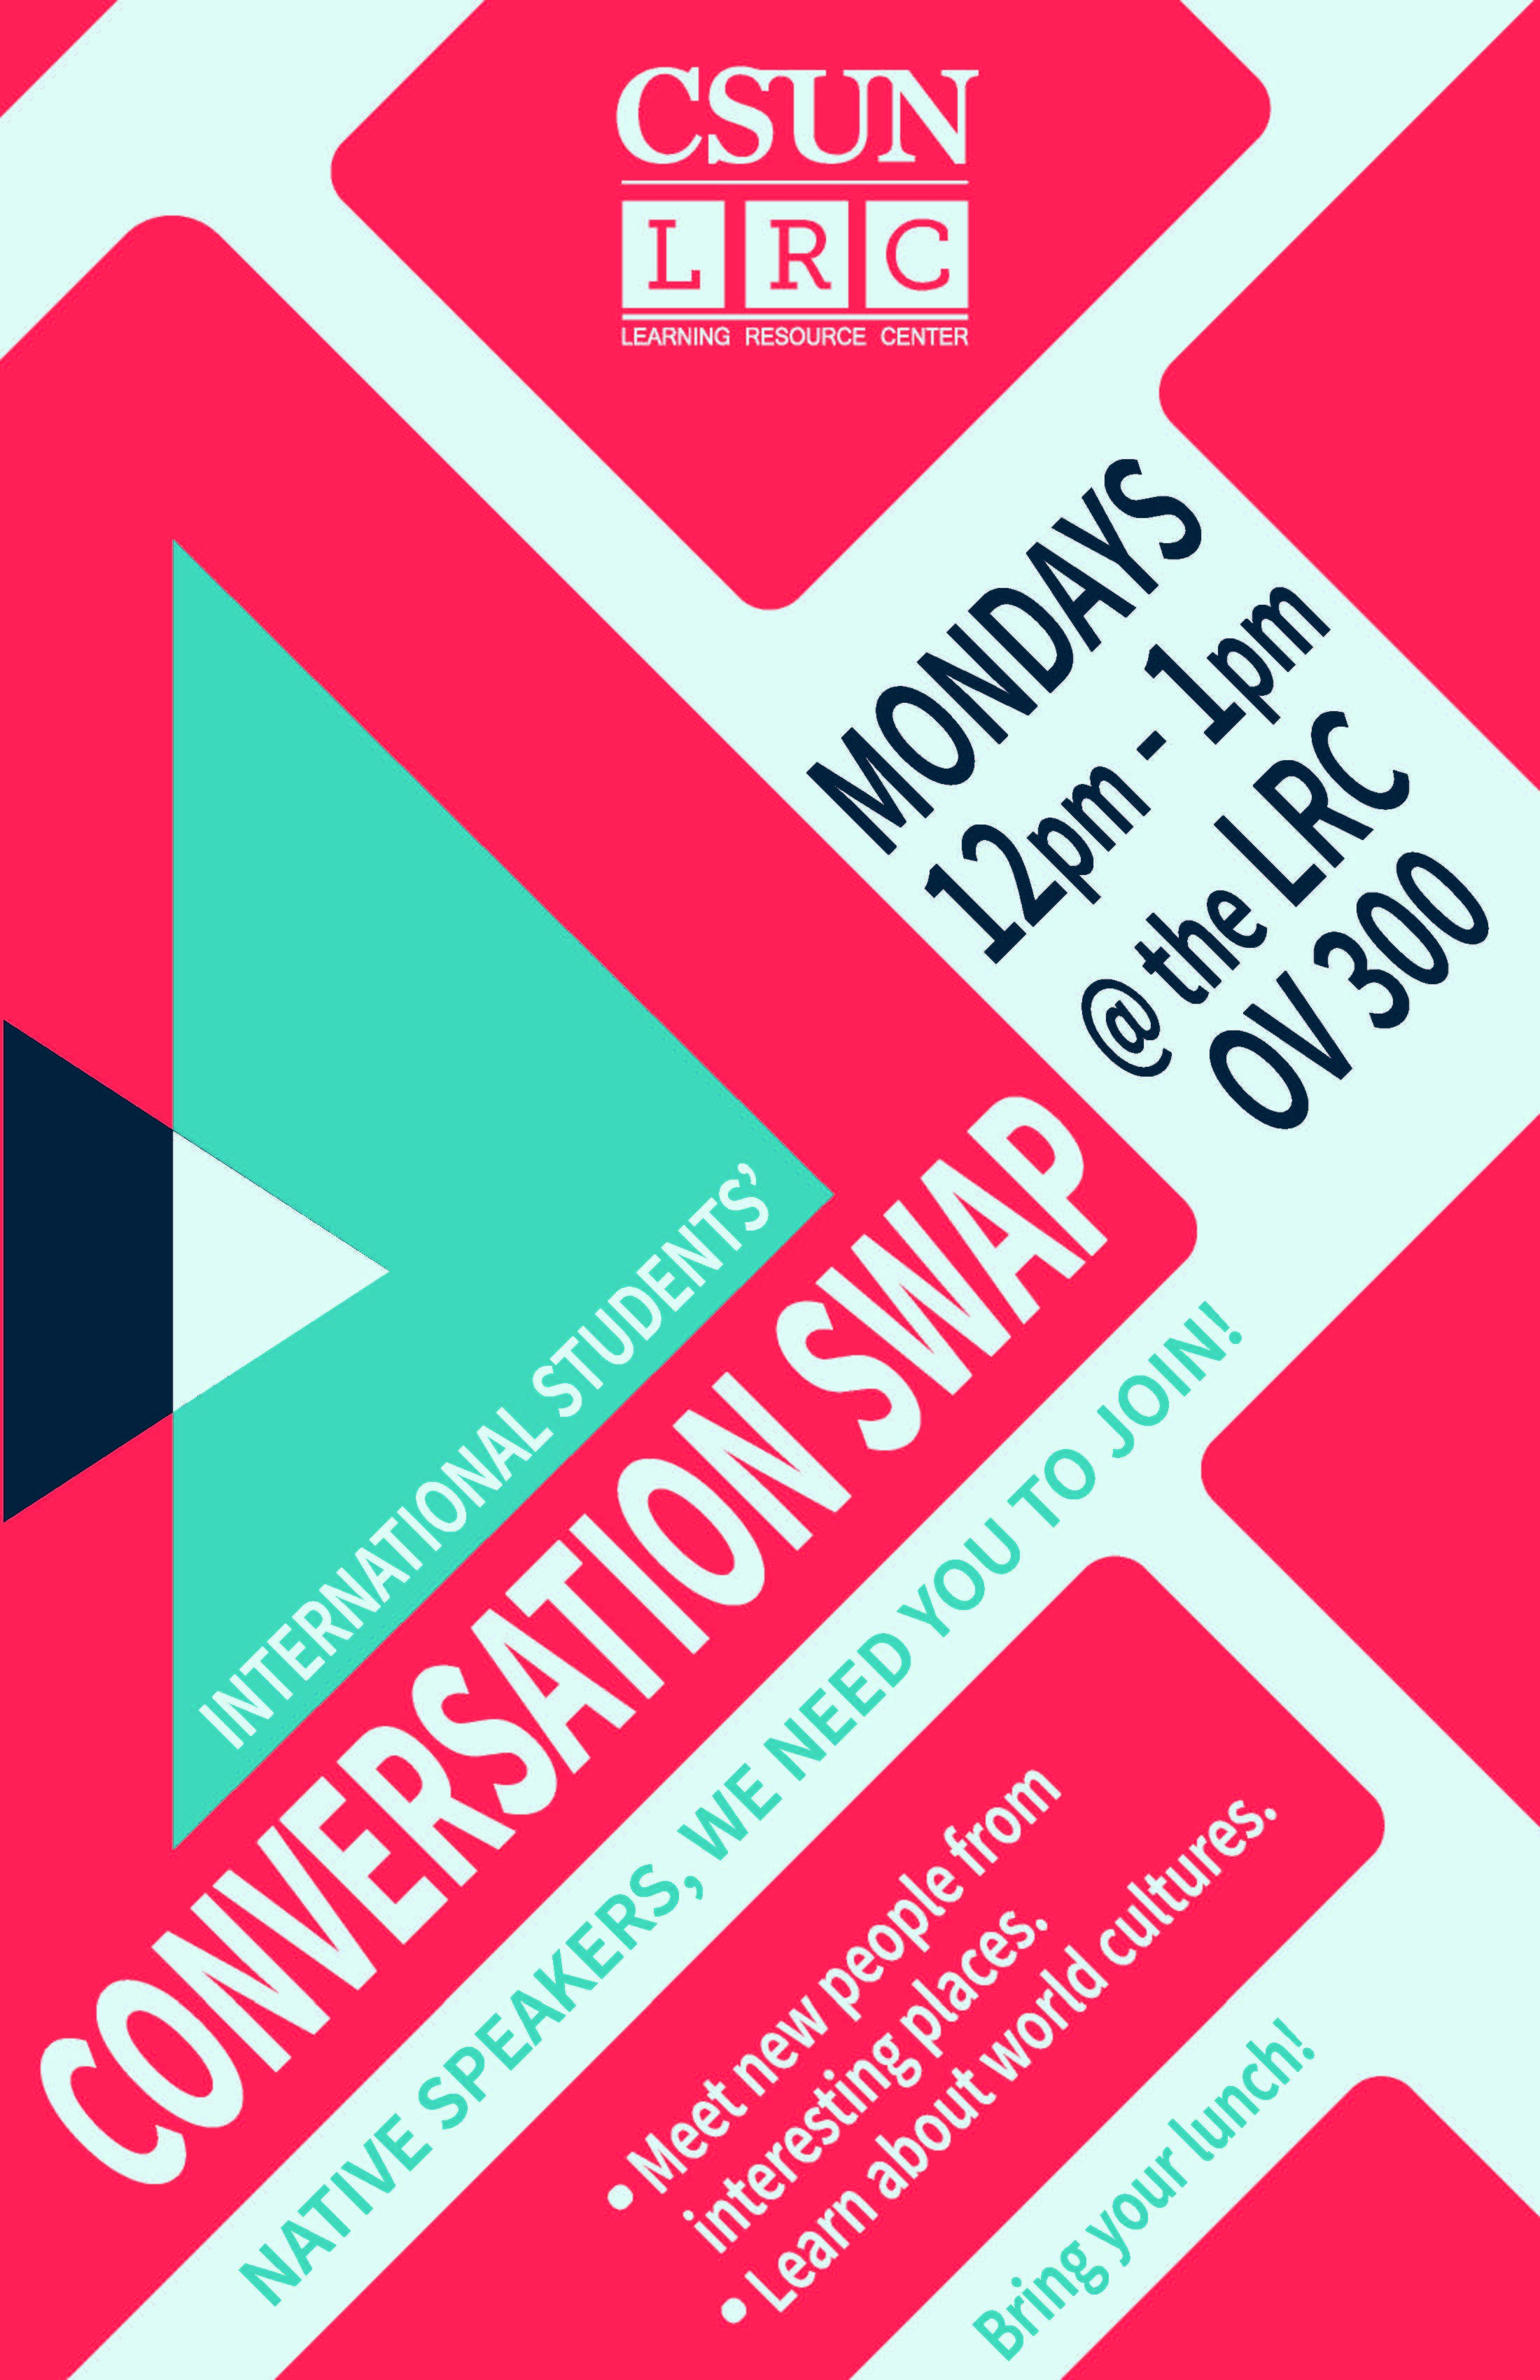 Conversation Swap Flyer